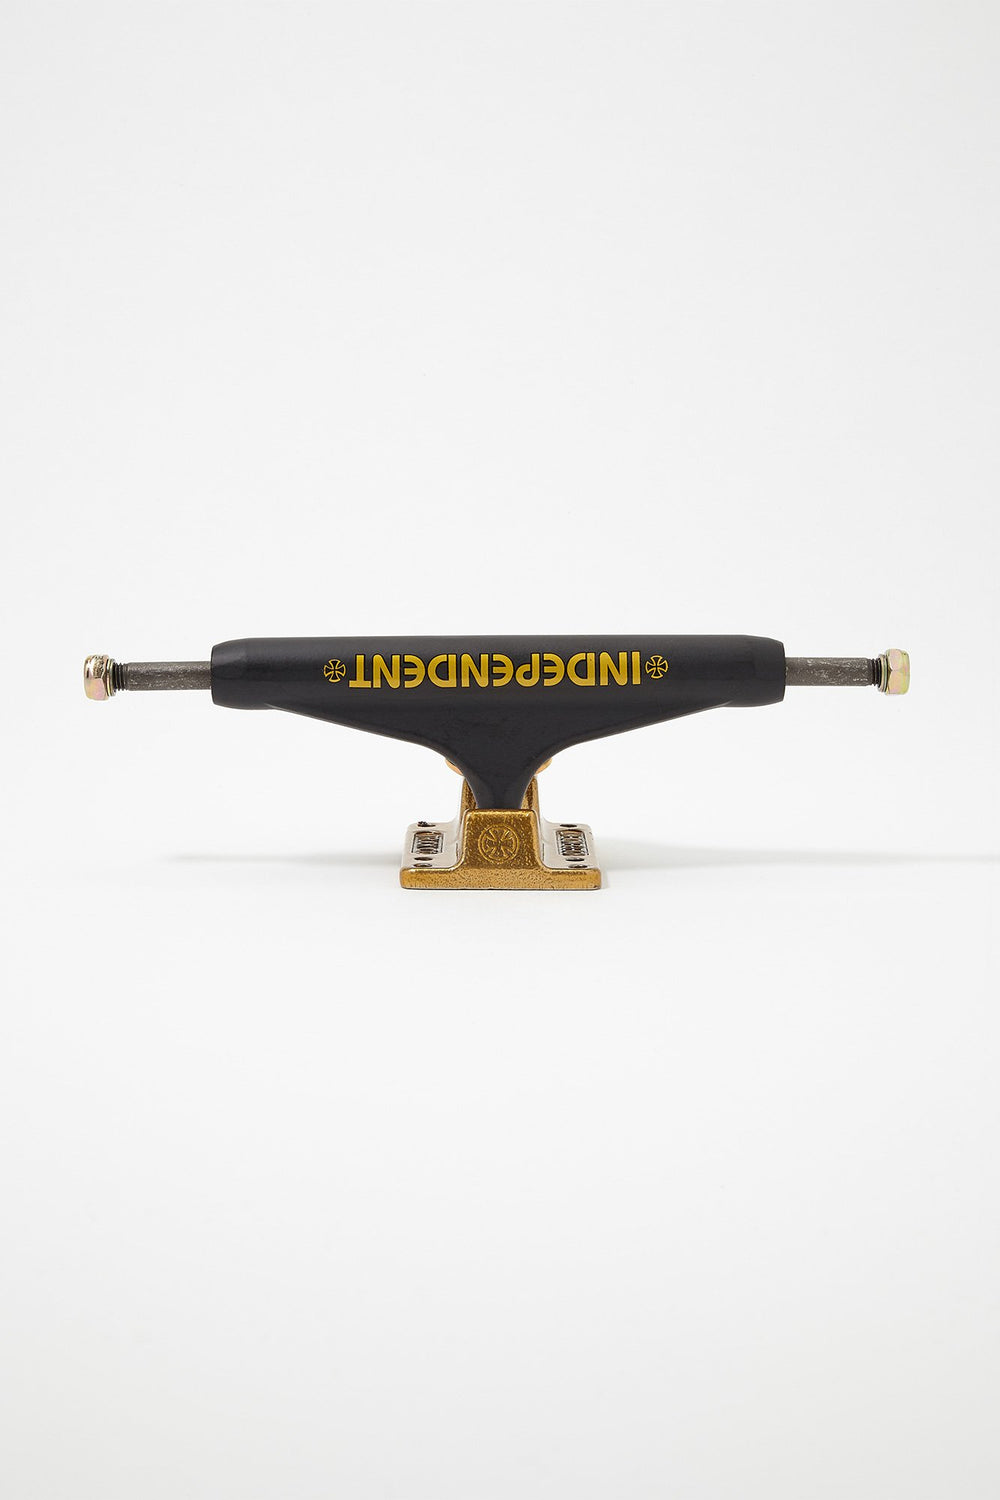 Independent Stage XI Bar Standard Trucks 159mm Gold